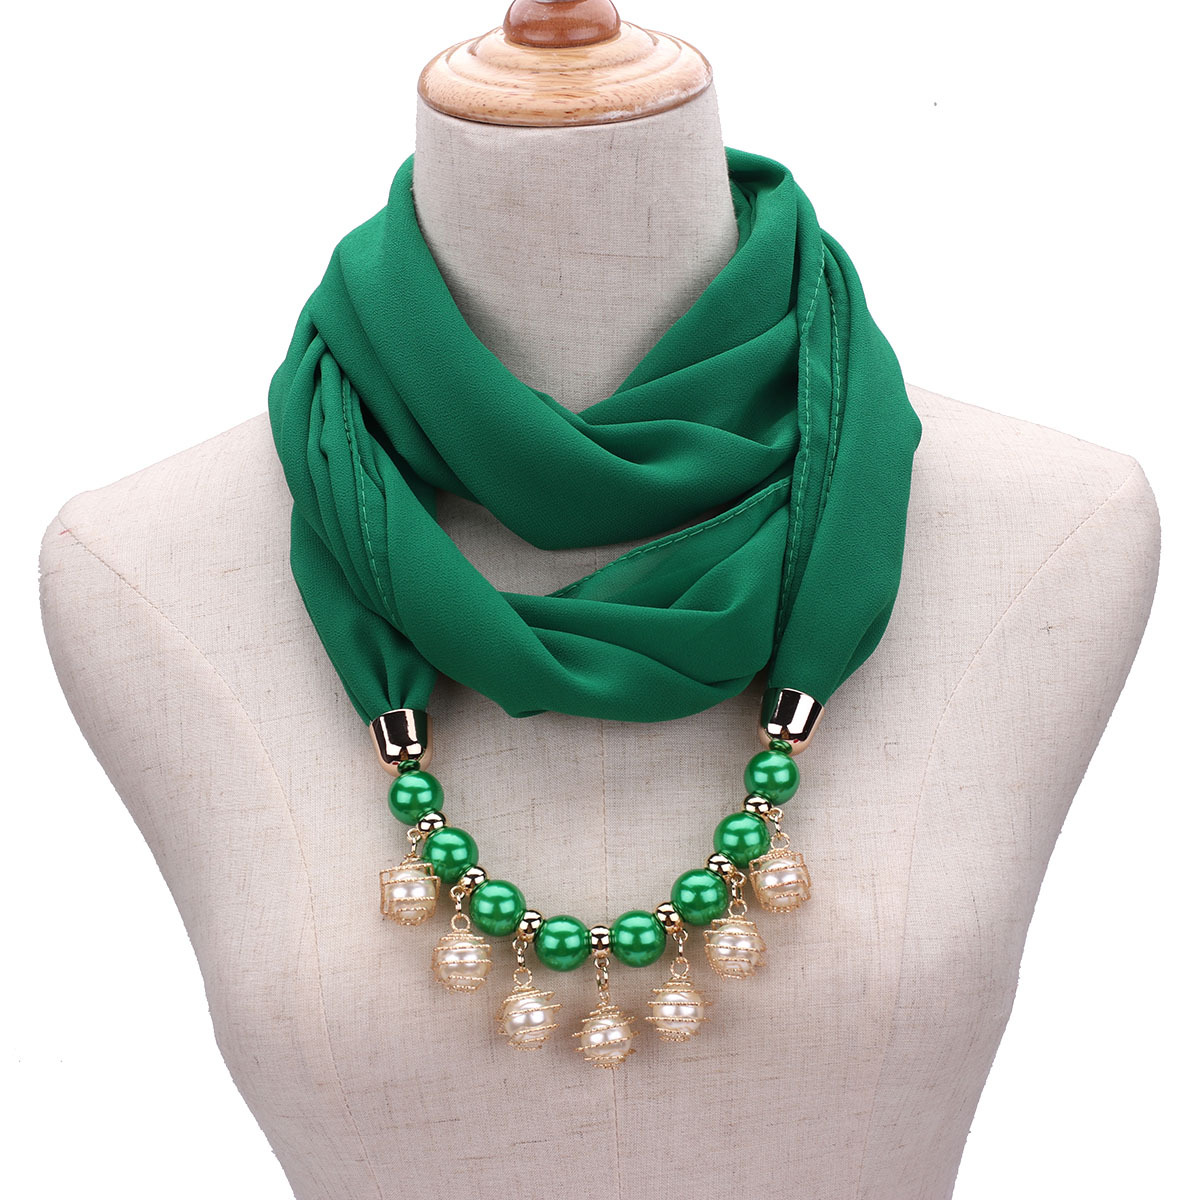 New Pendant beads jewelry   Scarf   Necklace Bohemia Necklaces For Women Chiffon   Scarves     Wrap   Foulard Female Accessories